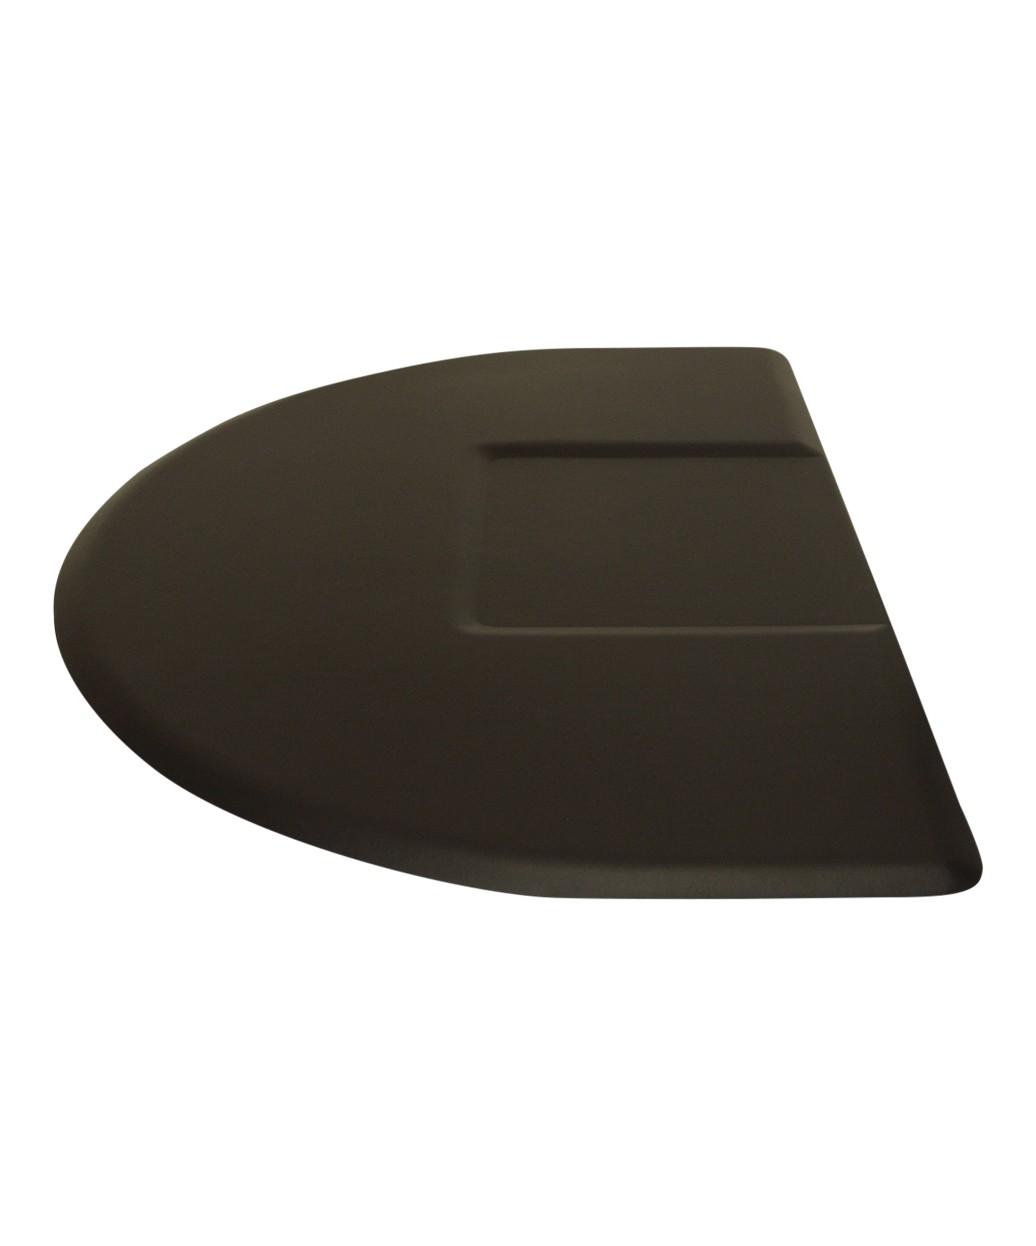 """3.5' X 5' IC Urethane Extra Soft Circular Mat w/ Square Cut-Out 5/8"""""""